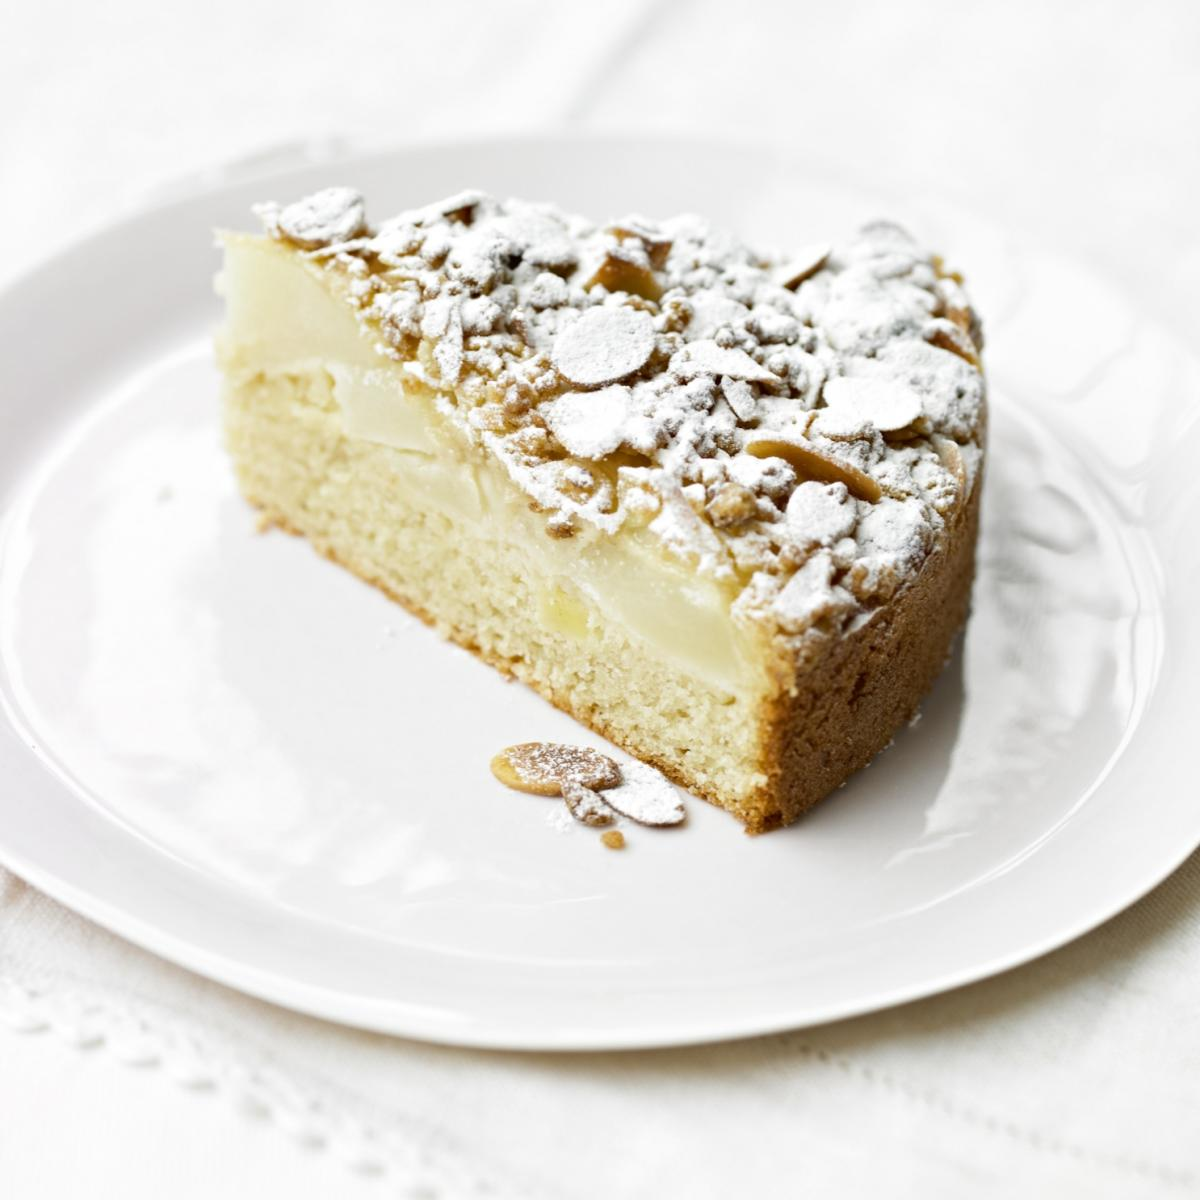 A picture of Delia's Pear and Almond Cake with Streusel Topping recipe